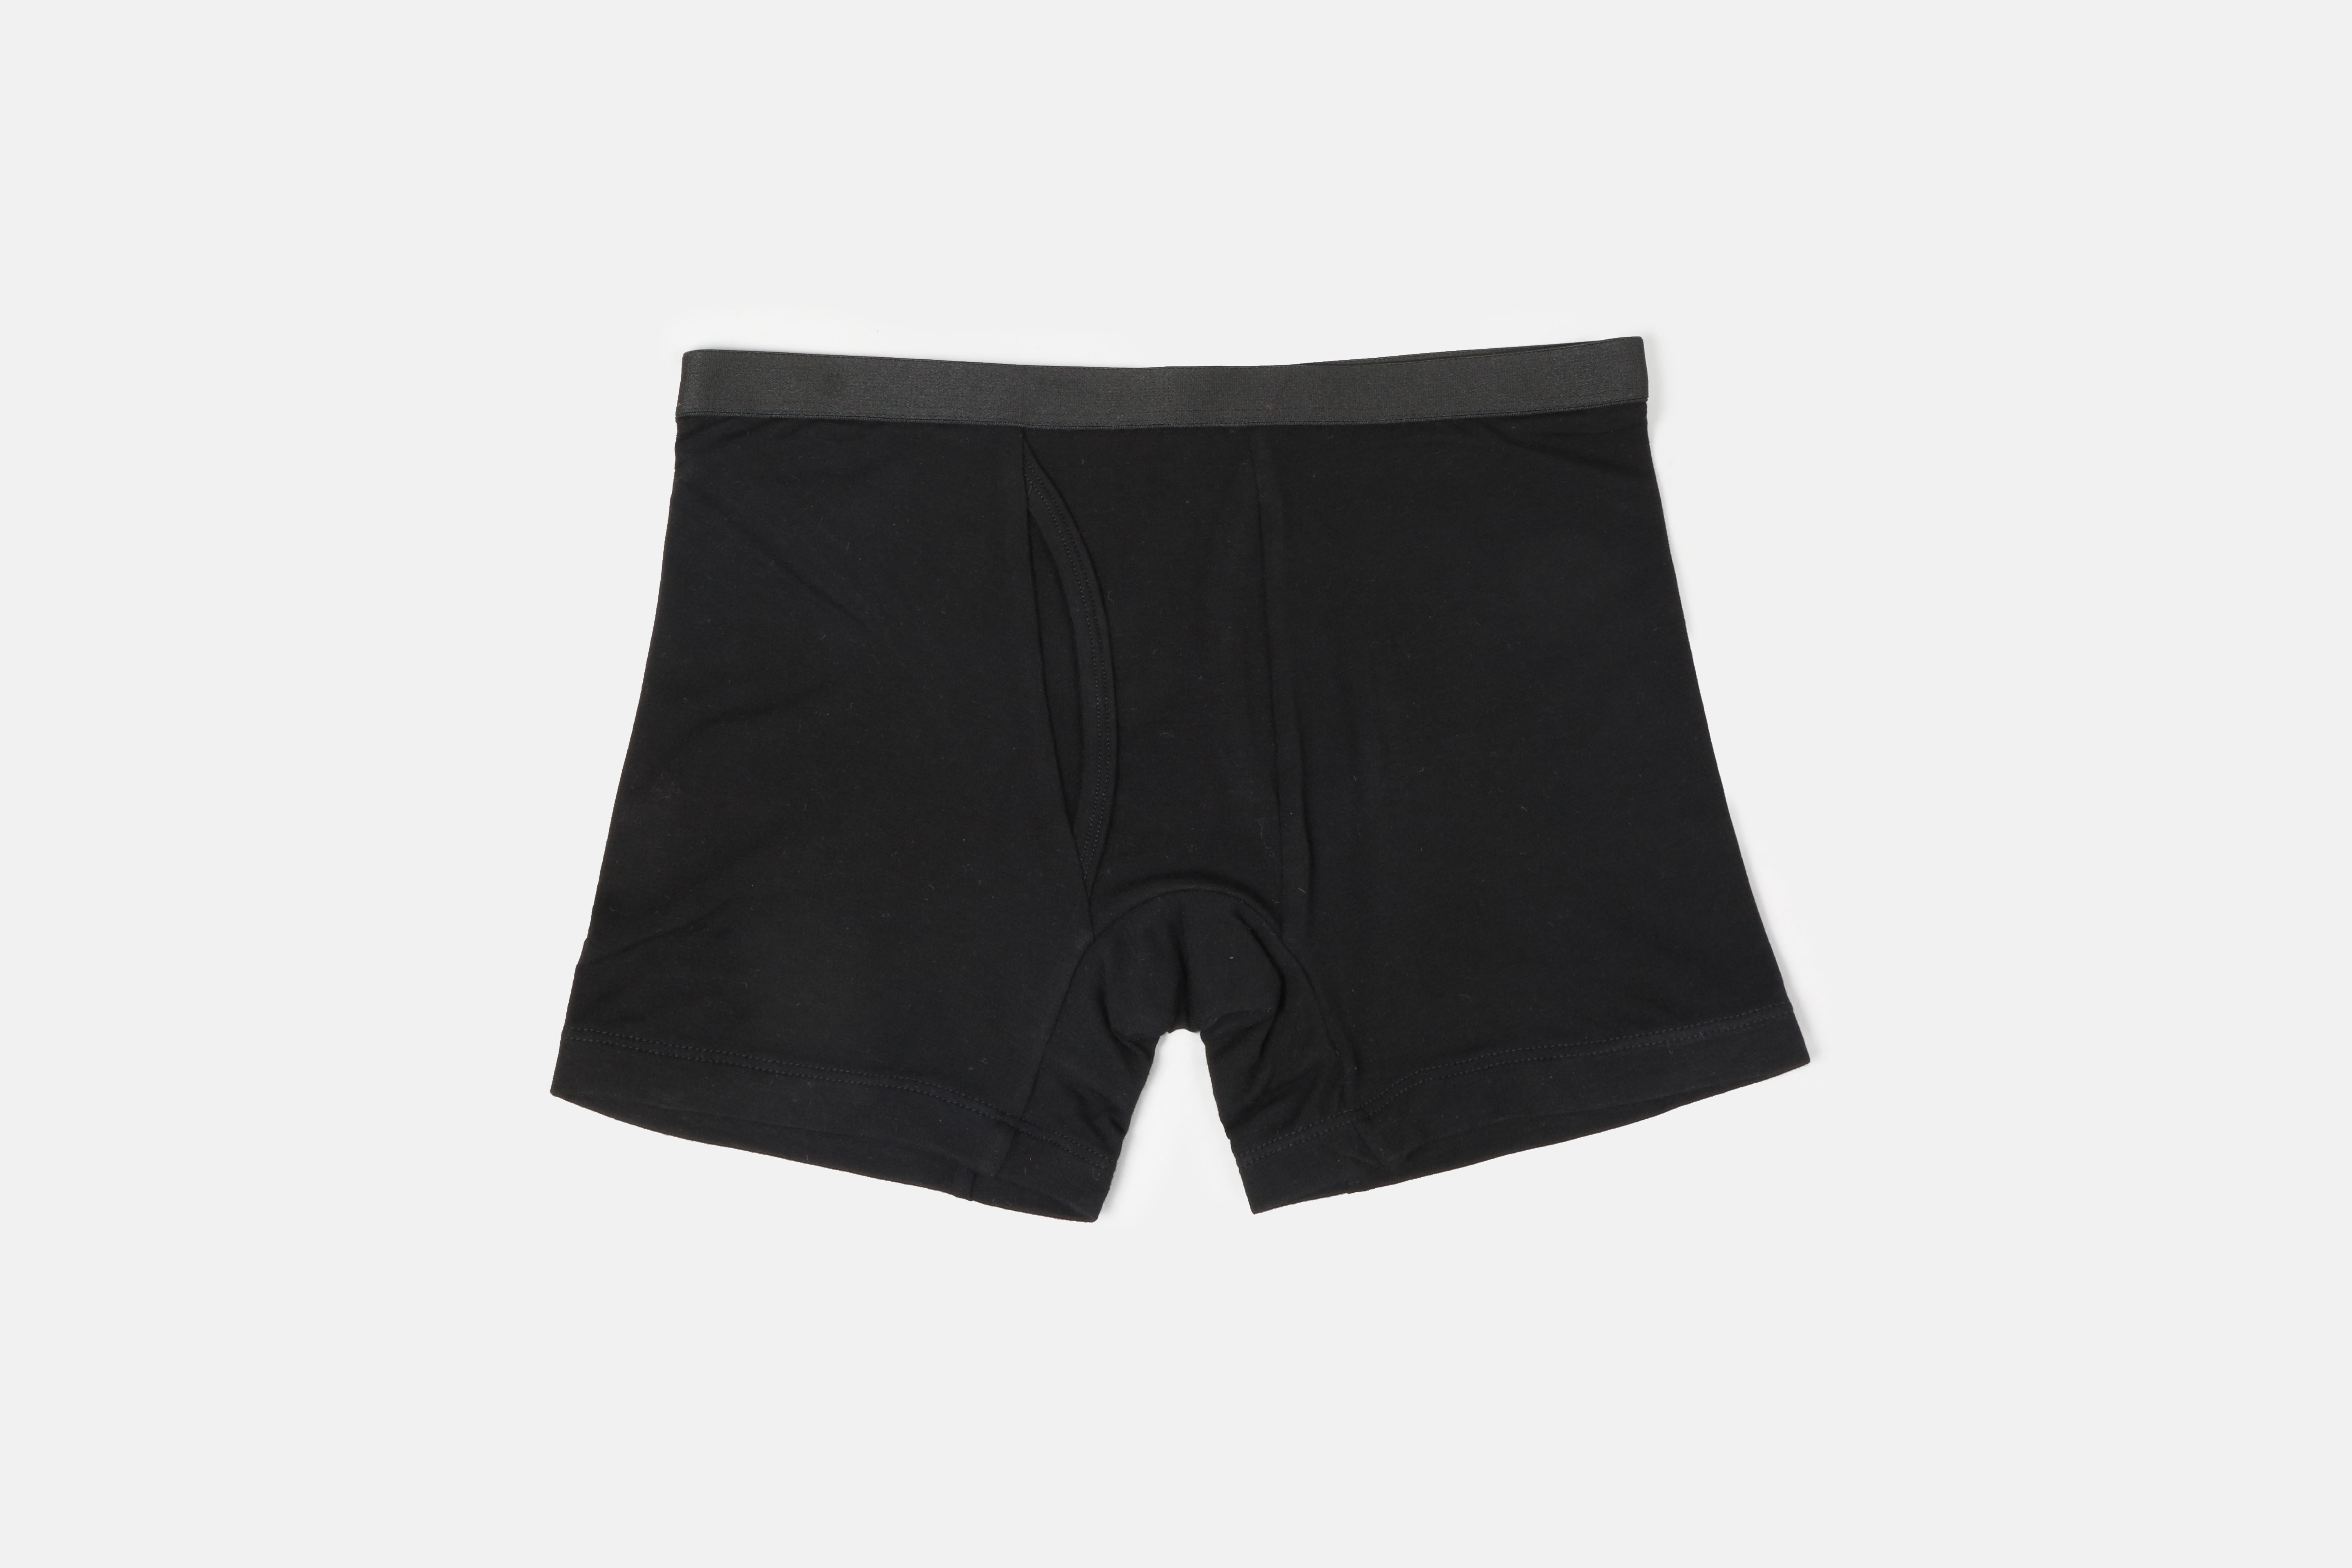 【REING Underwear】Brief / ボクサーパンツ